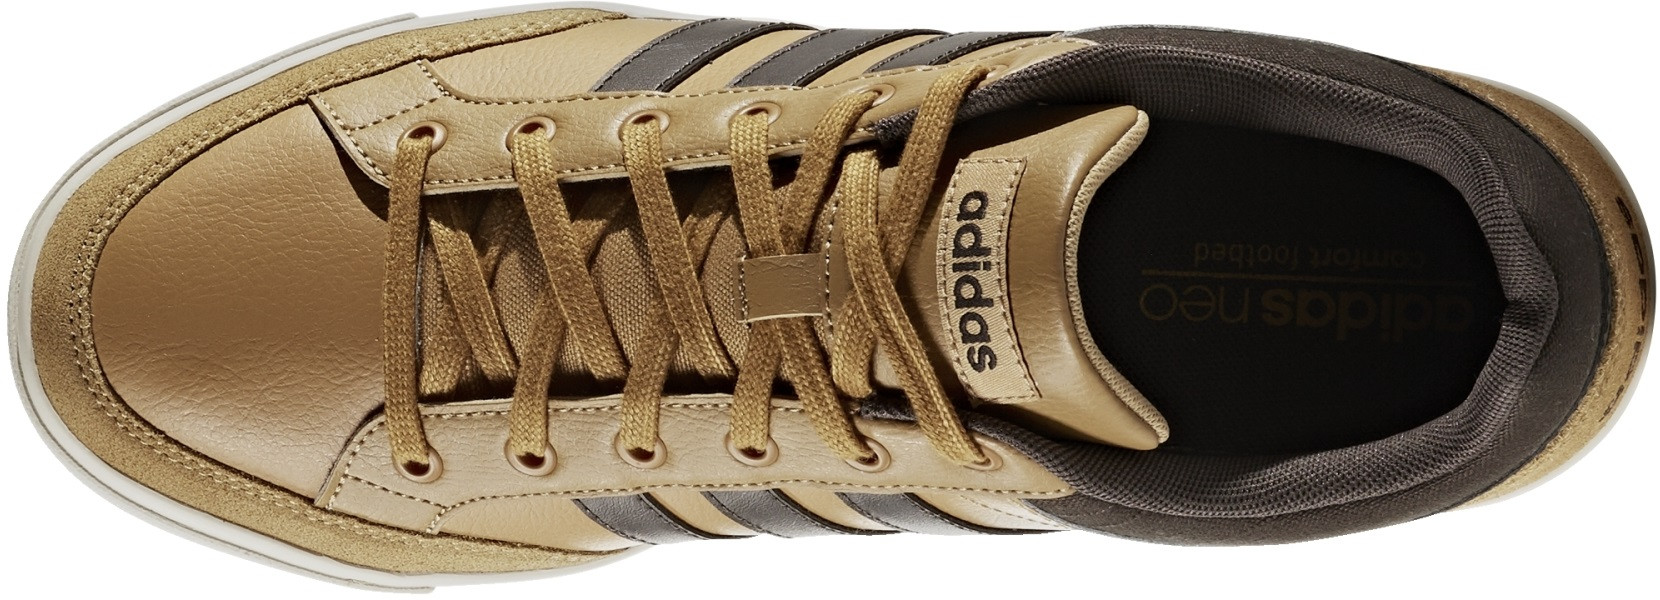 Adidas Neo Shoes CACITY Brown Black | Sportsman24